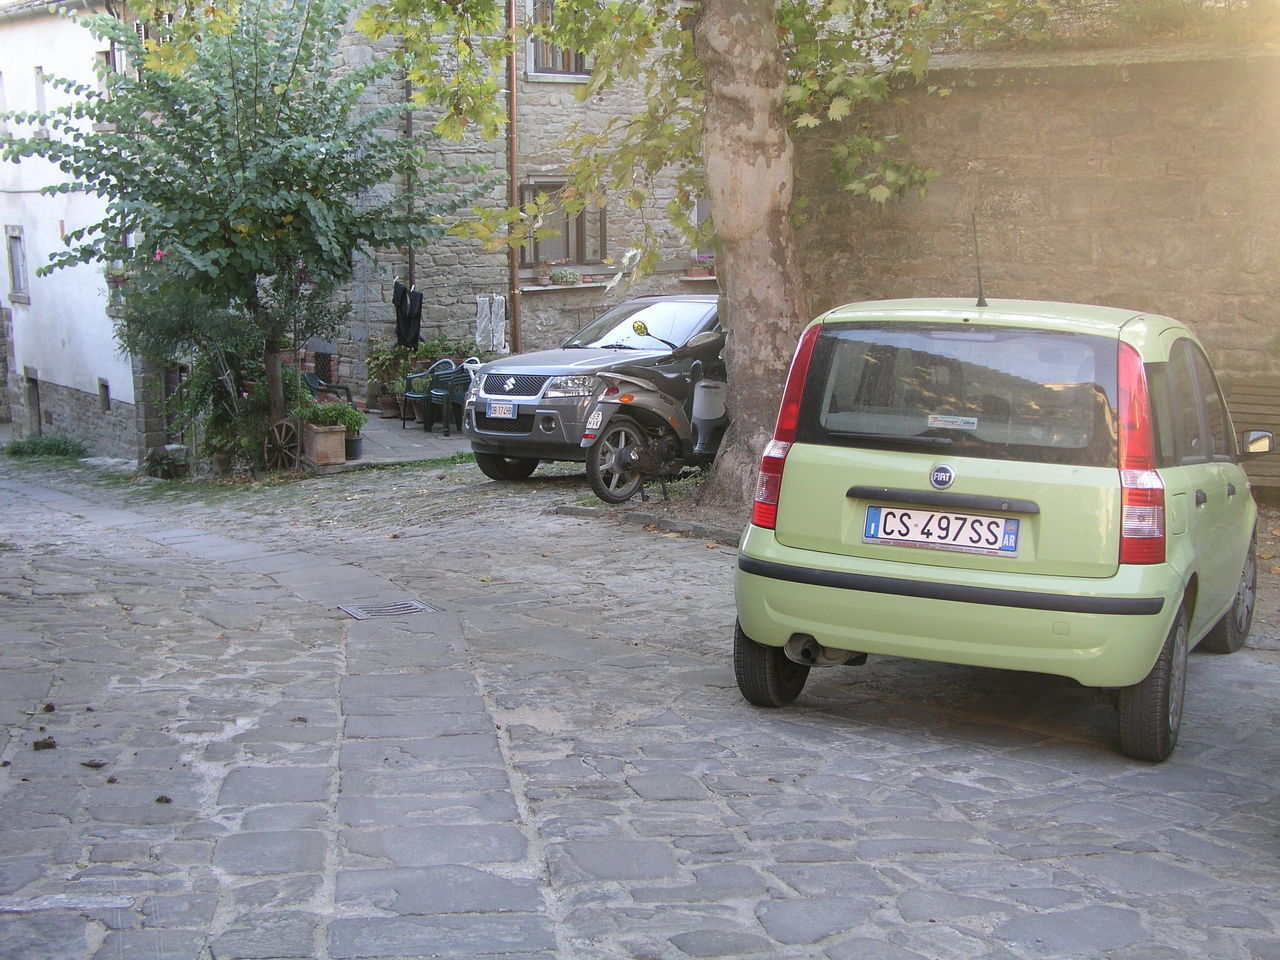 Architecture Car Day Fiat Panda Land Vehicle Lime Color Mode Of Transport No People Outdoors Stationary Transportation Tree